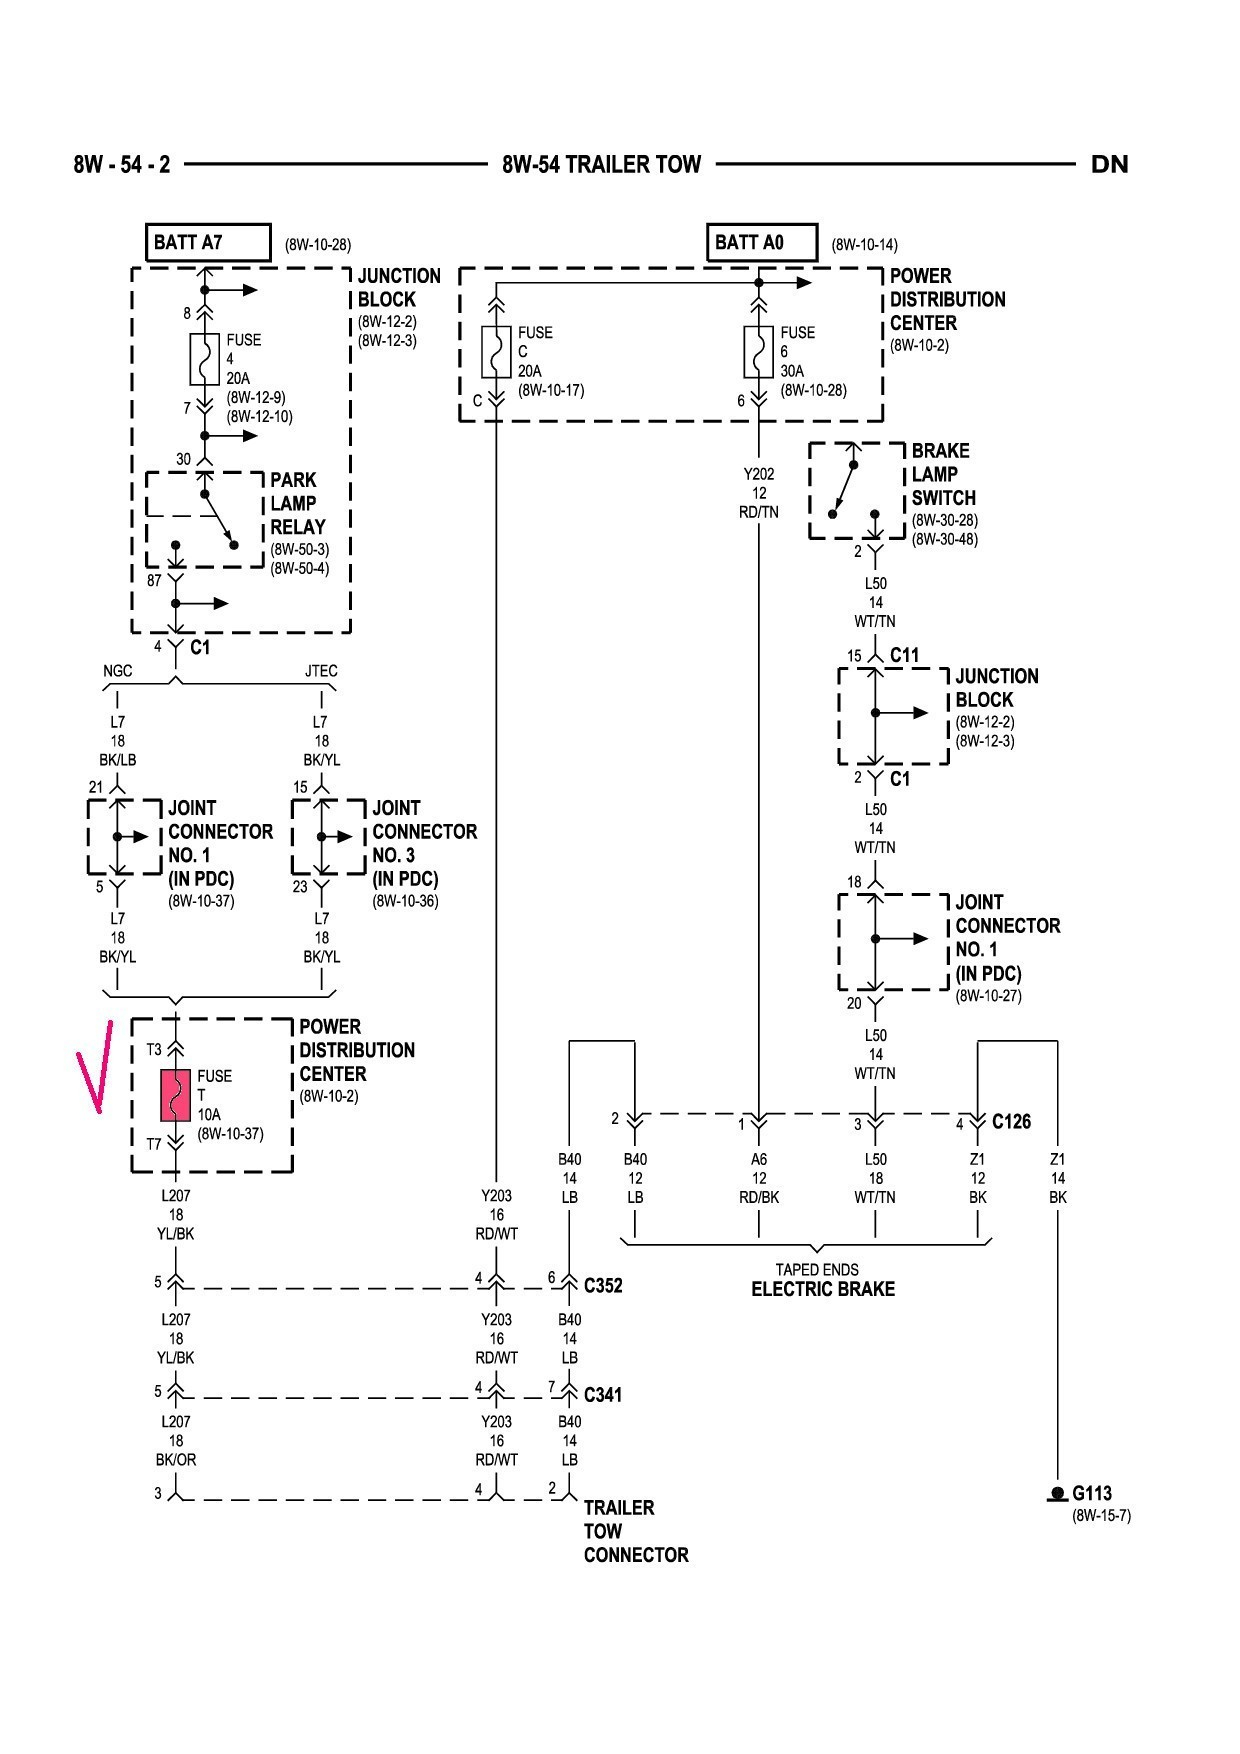 Hes 1006 12 24d 630 Wiring Diagram Download